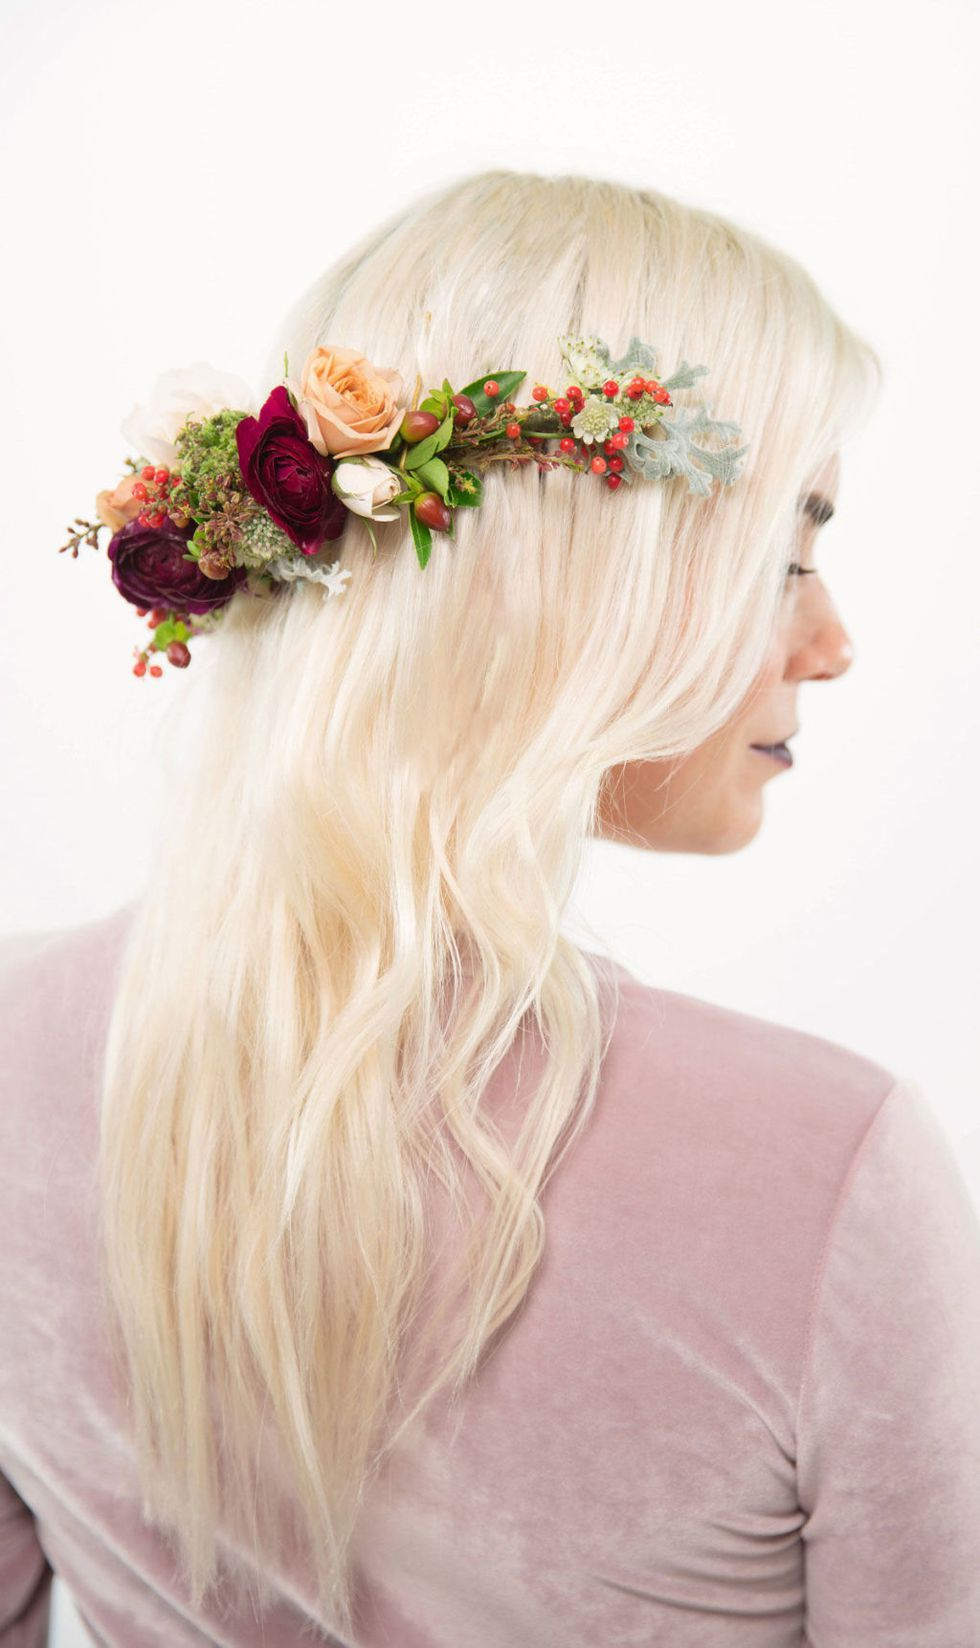 5 gorgeous flower crowns that are really easy to make wedding make how to make a winter flower crown best flower crown ideas for the holidays izmirmasajfo